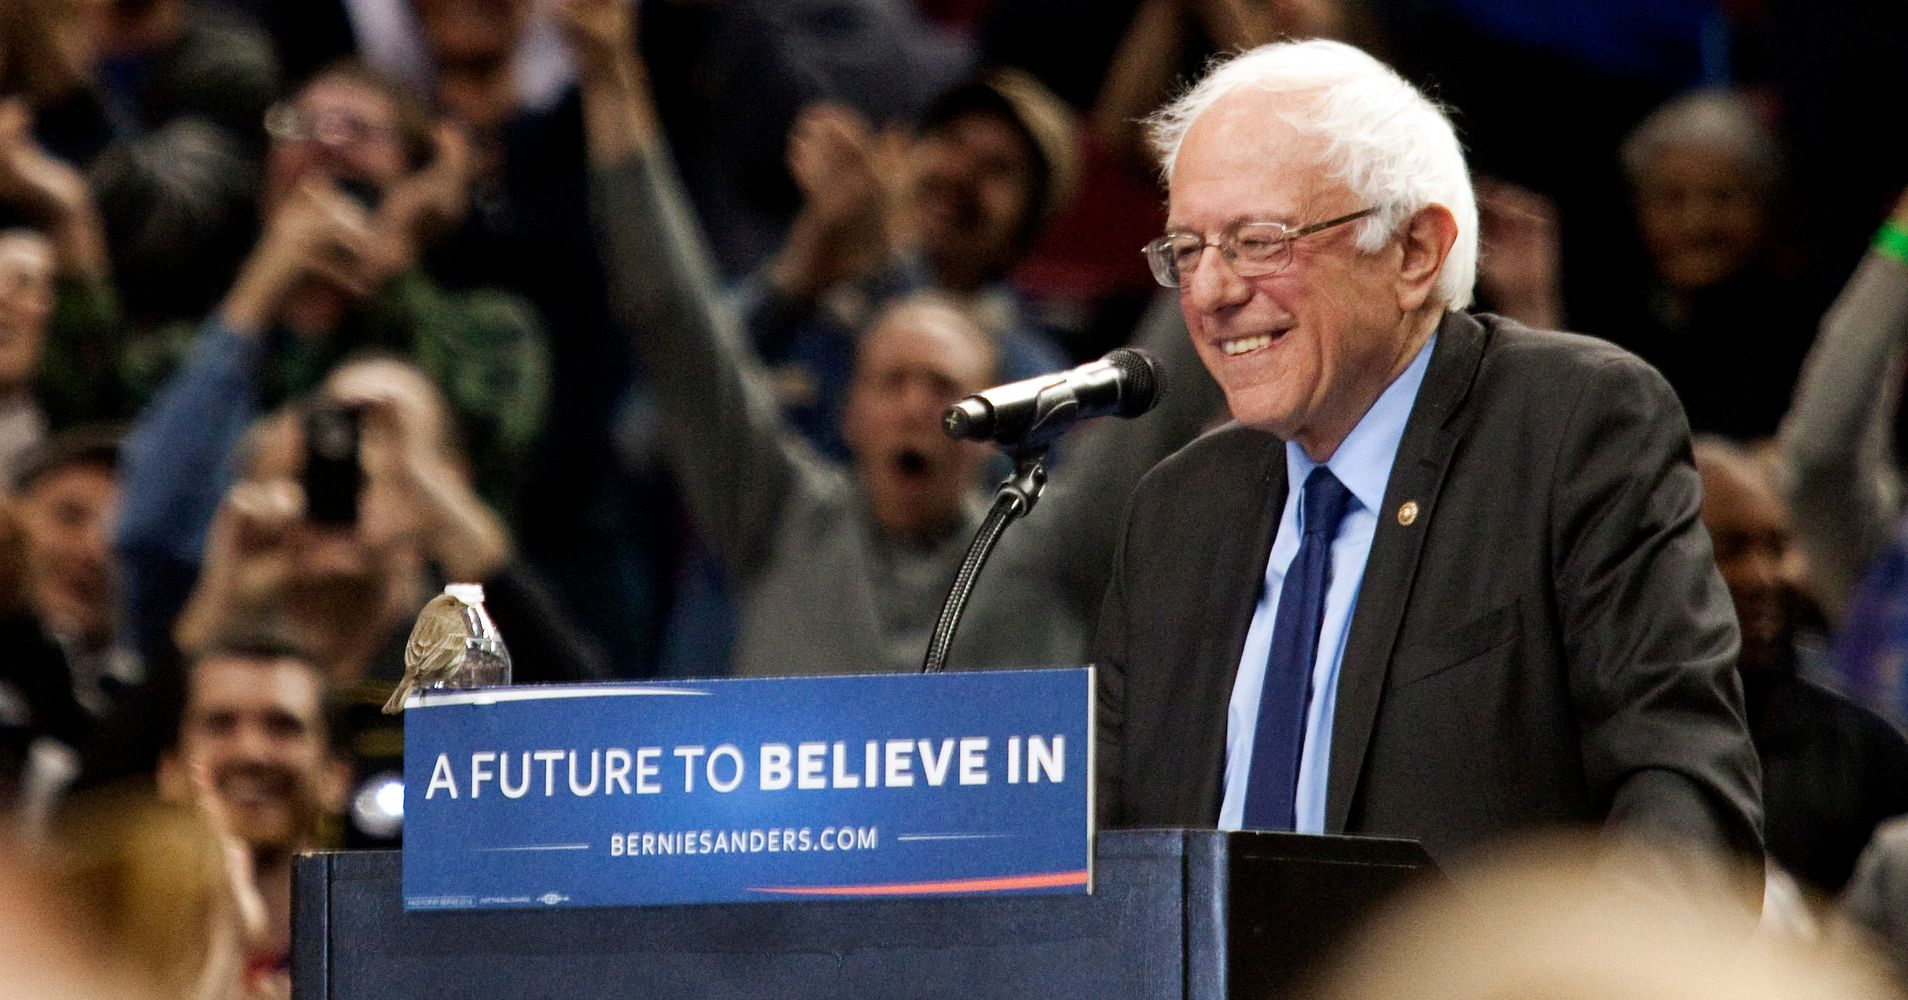 a bird landed on bernie sanders podium exactly a year ago today